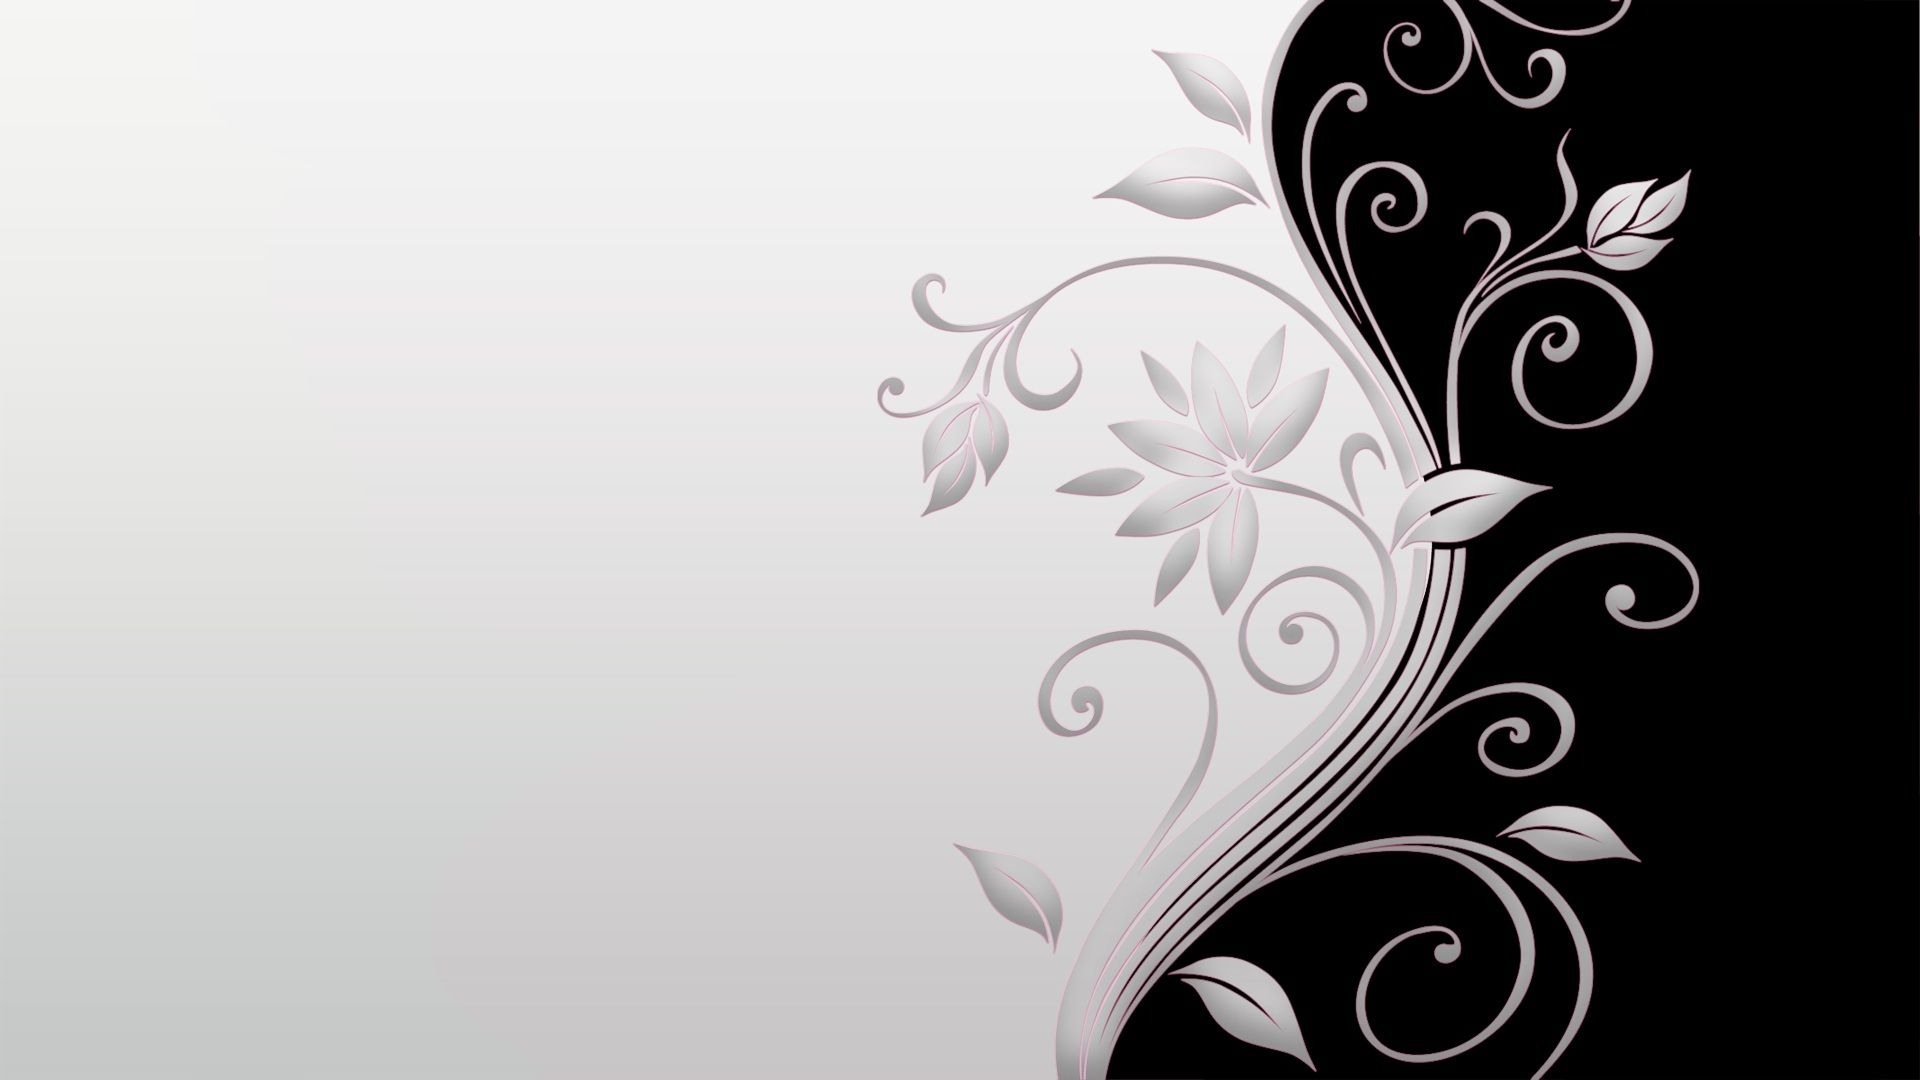 Black red and white wallpaper wallpaper gwc16 black and white black red and white wallpaper wallpaper mightylinksfo